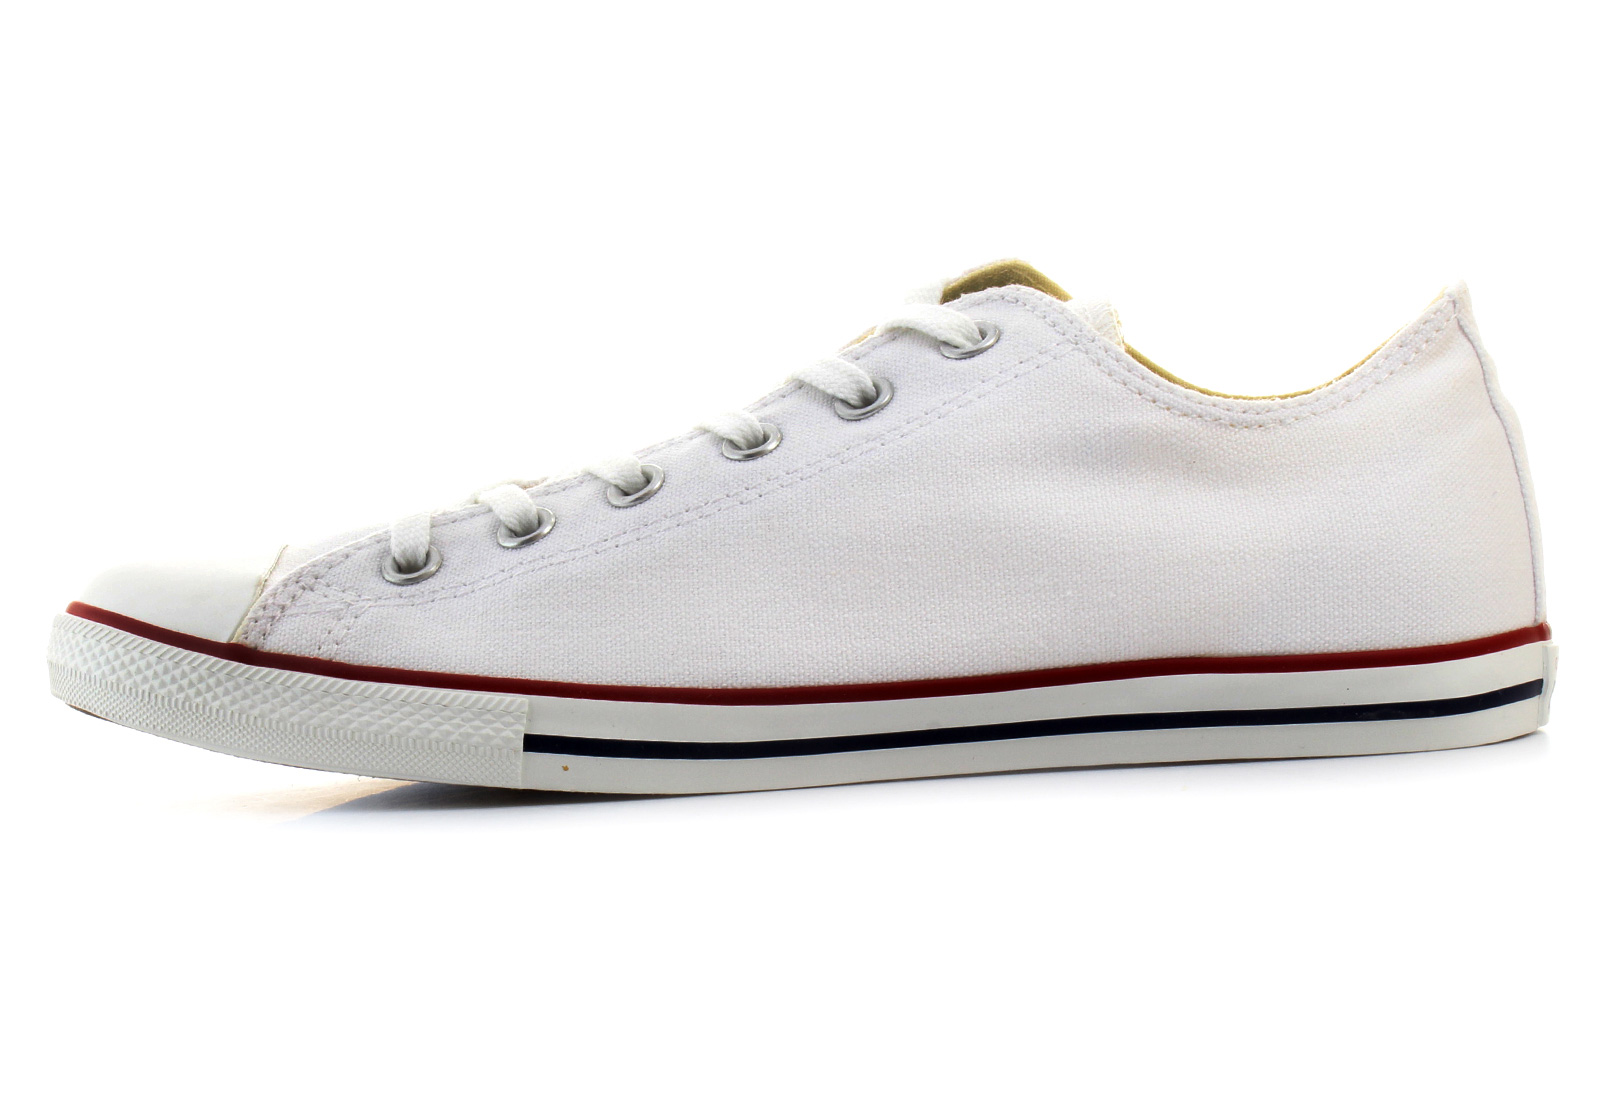 converse sneakers chuck taylor all star lean ox 142270c online shop for sneakers shoes. Black Bedroom Furniture Sets. Home Design Ideas